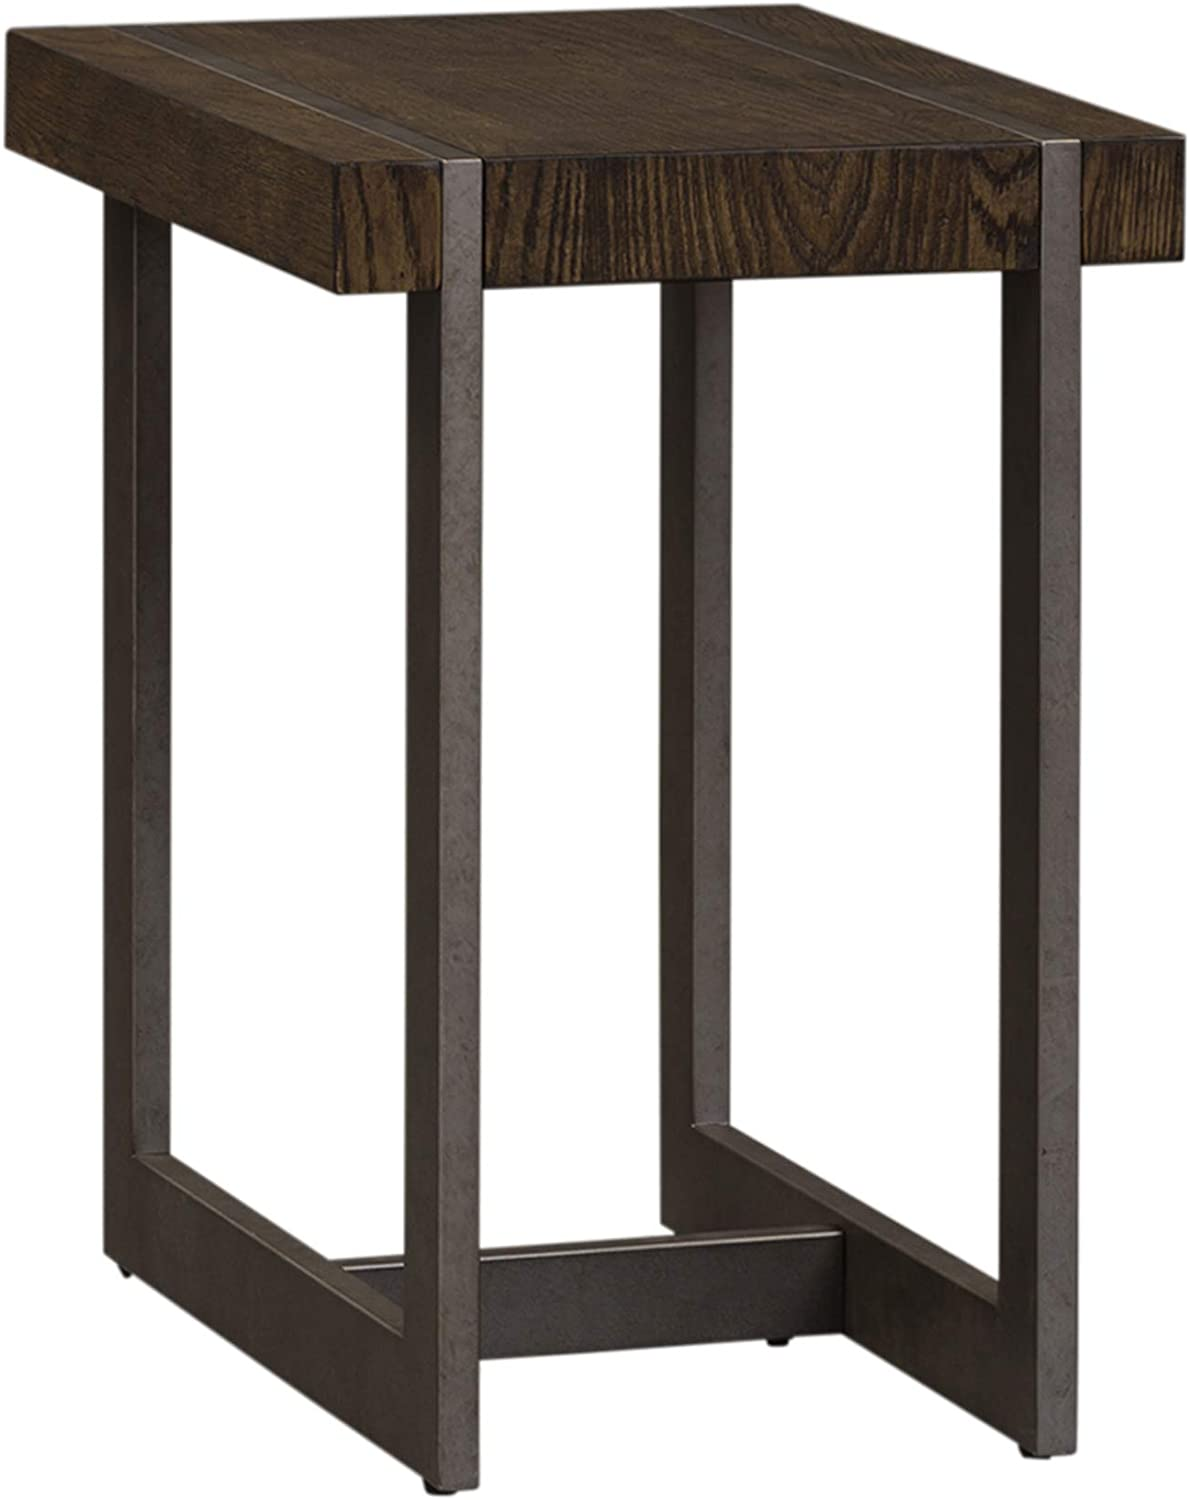 Liberty Furniture Industries Sorrento Valley Chair Side Table, W16 x D24 x H24, Medium Brown